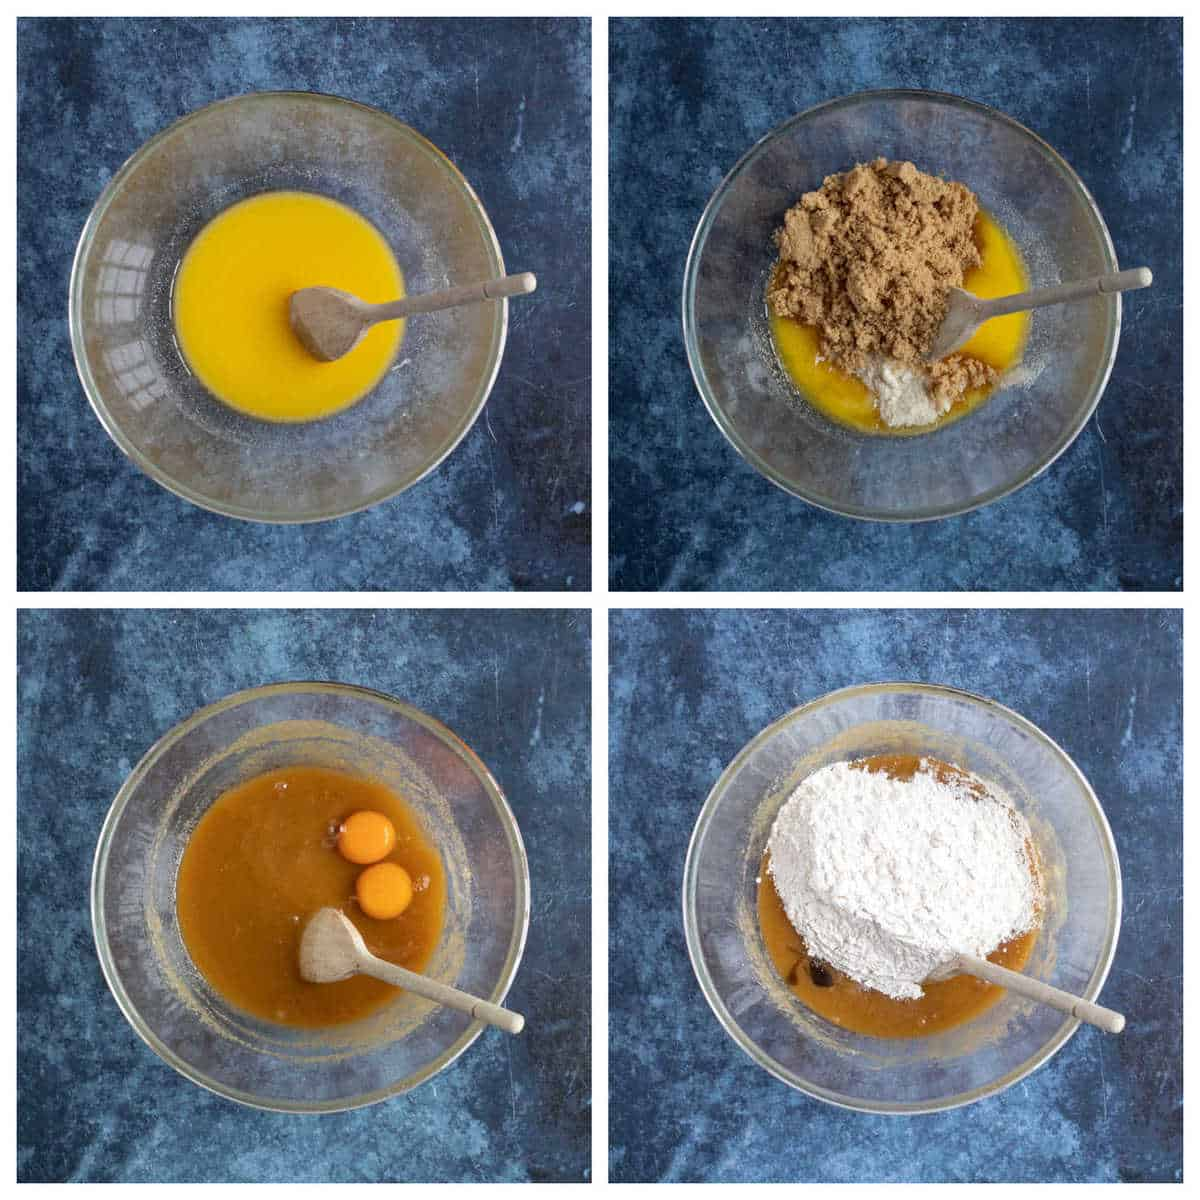 Step by step photo instructions for making nutella blondies.